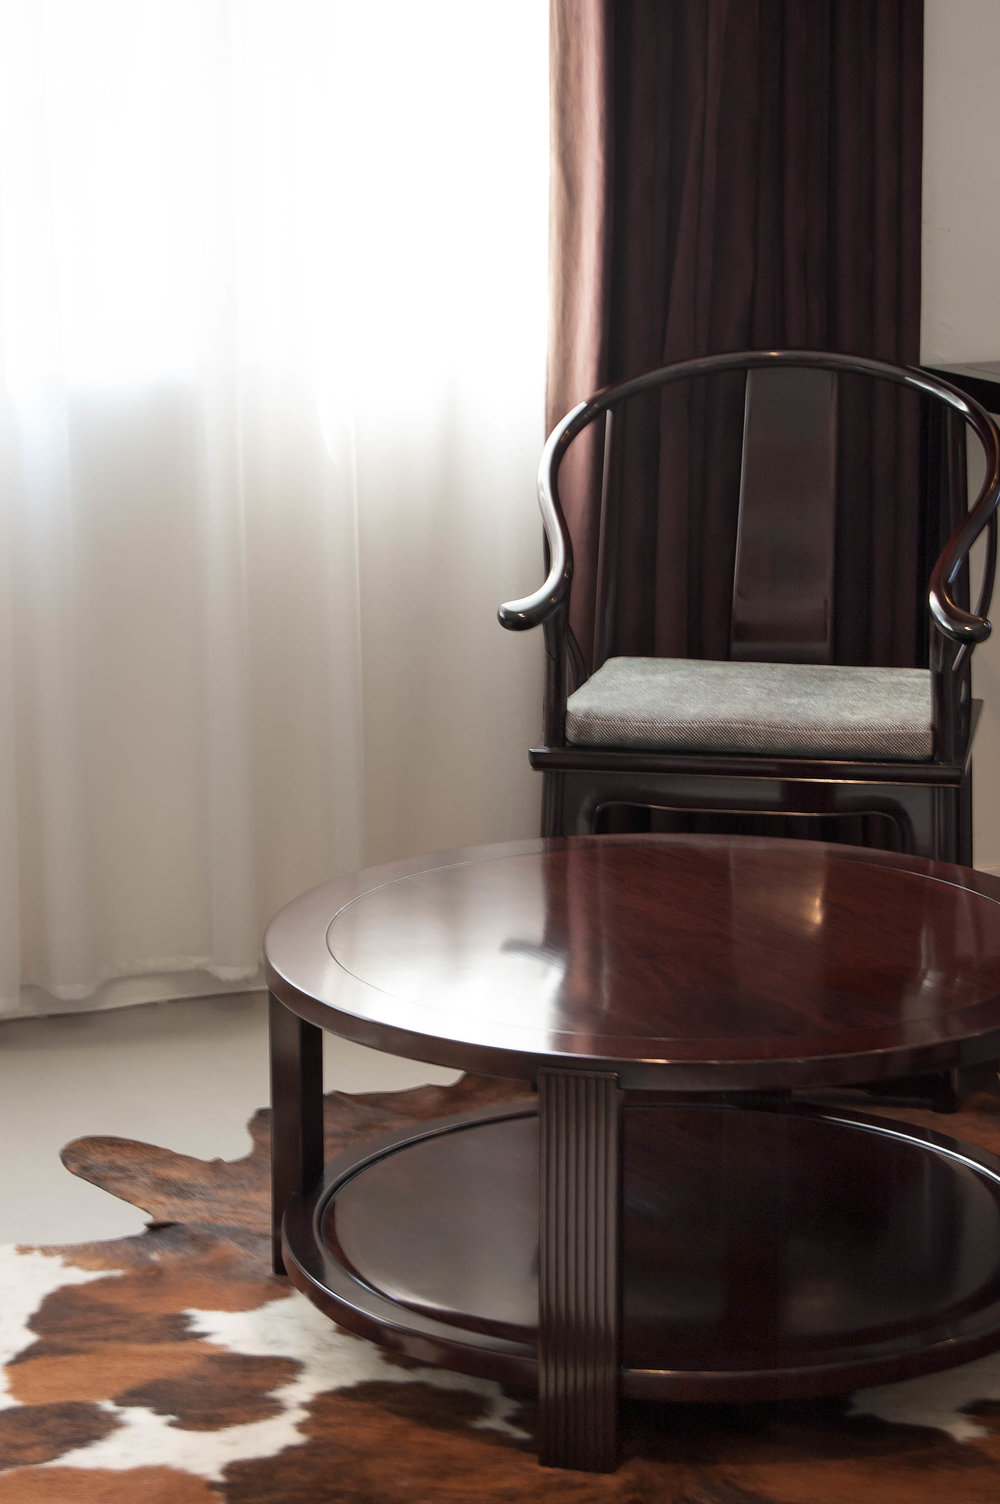 ....chinese ming style furniture | horseshoe armchair : ch 5..中式明式家具 | 圈椅 :ch 5....